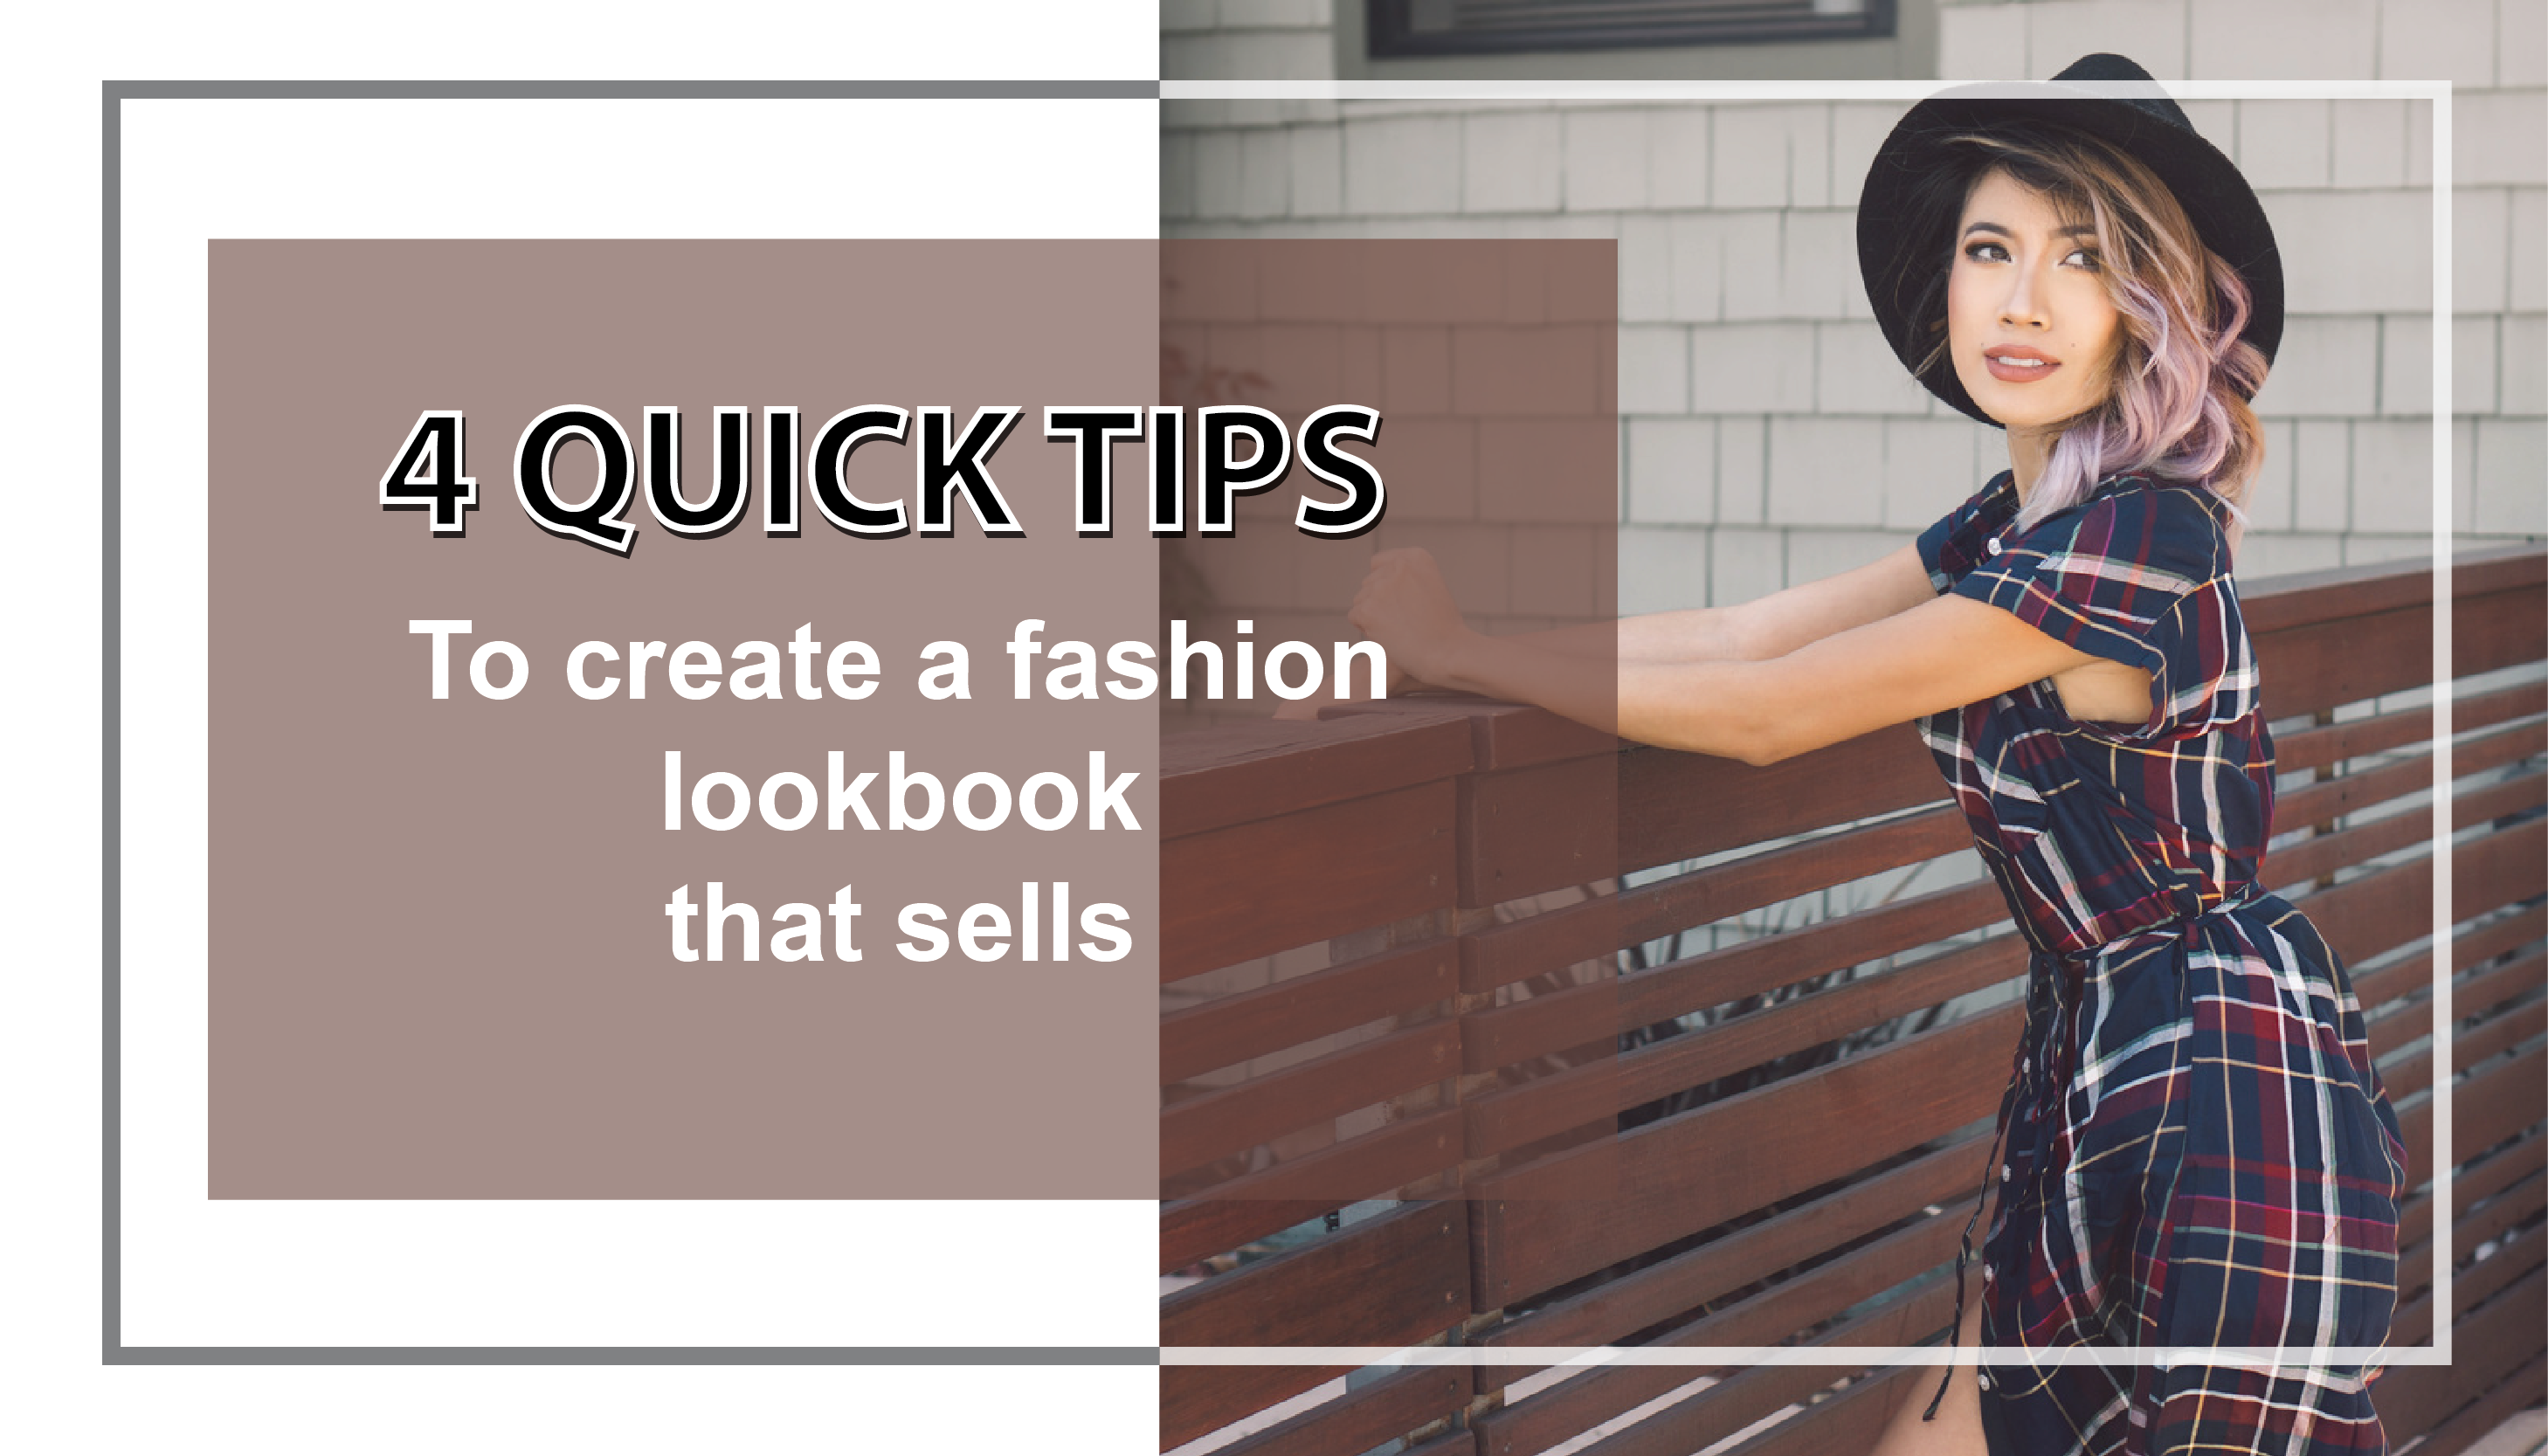 4 Quick tips to create a fashion lookbook that sells